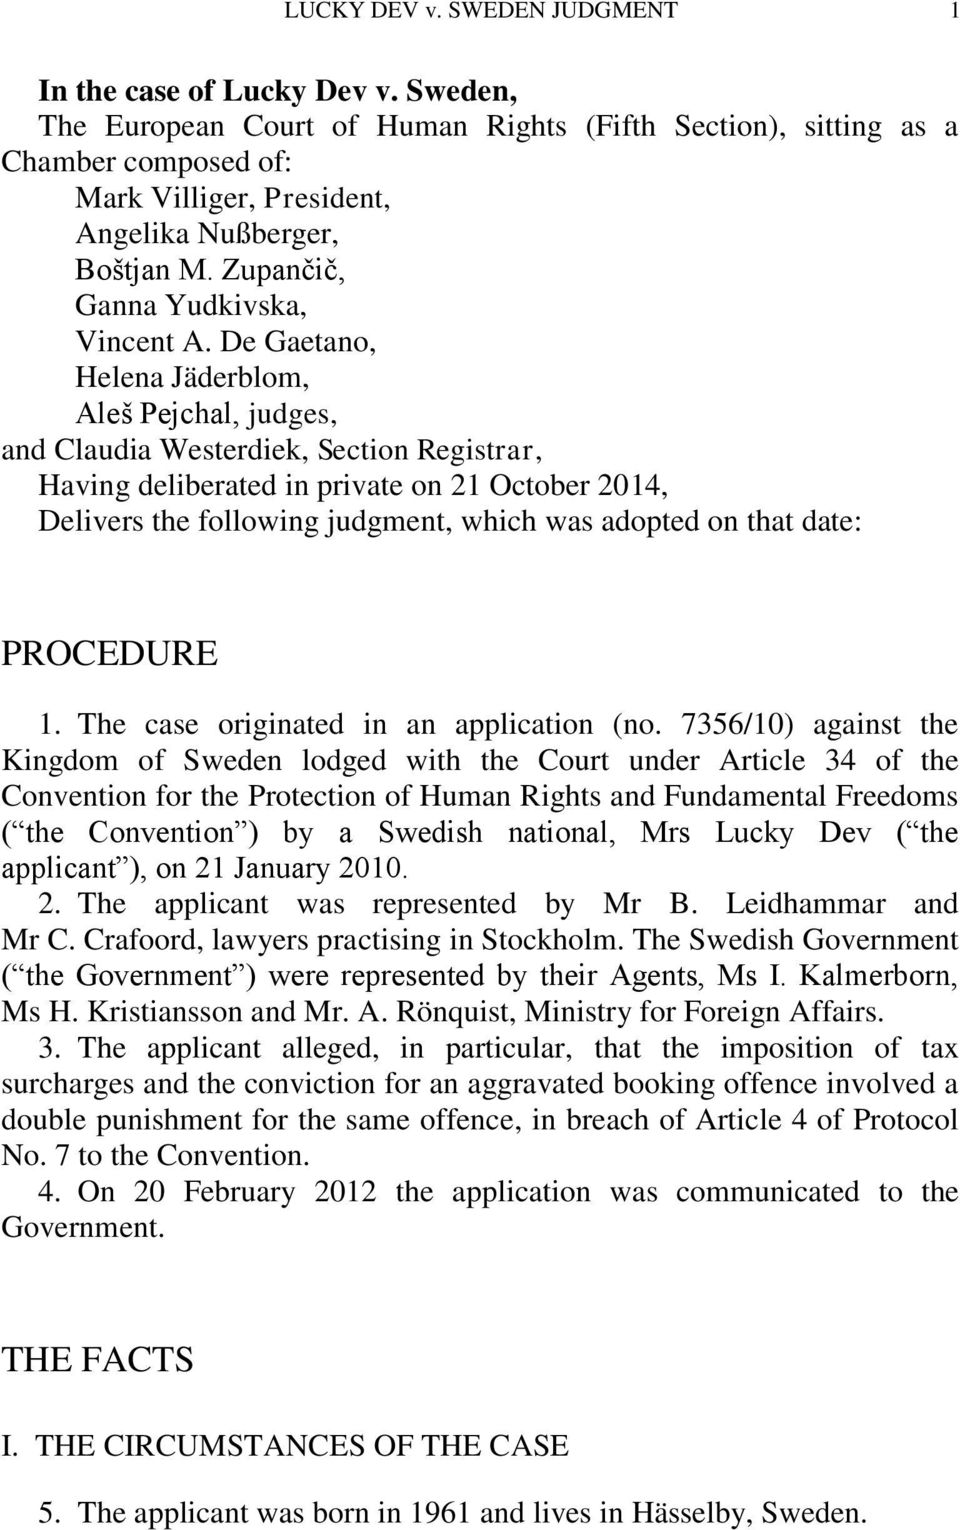 De Gaetano, Helena Jäderblom, Aleš Pejchal, judges, and Claudia Westerdiek, Section Registrar, Having deliberated in private on 21 October 2014, Delivers the following judgment, which was adopted on